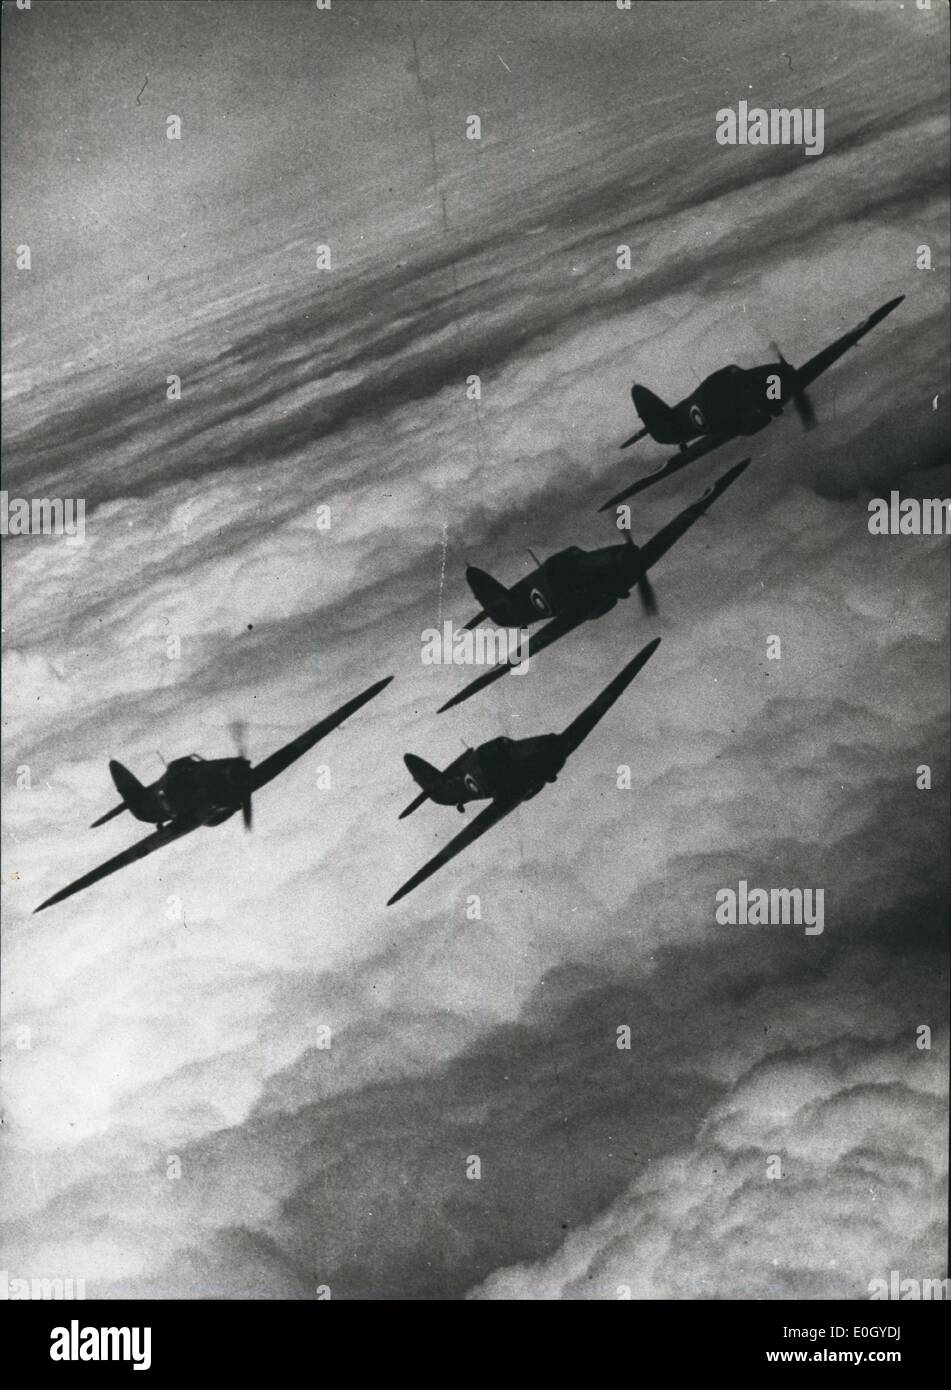 Jan 1, 1940 - A flight of Hawker Hurricane fighter planes. (exact date unknown) APRESS - Stock Image